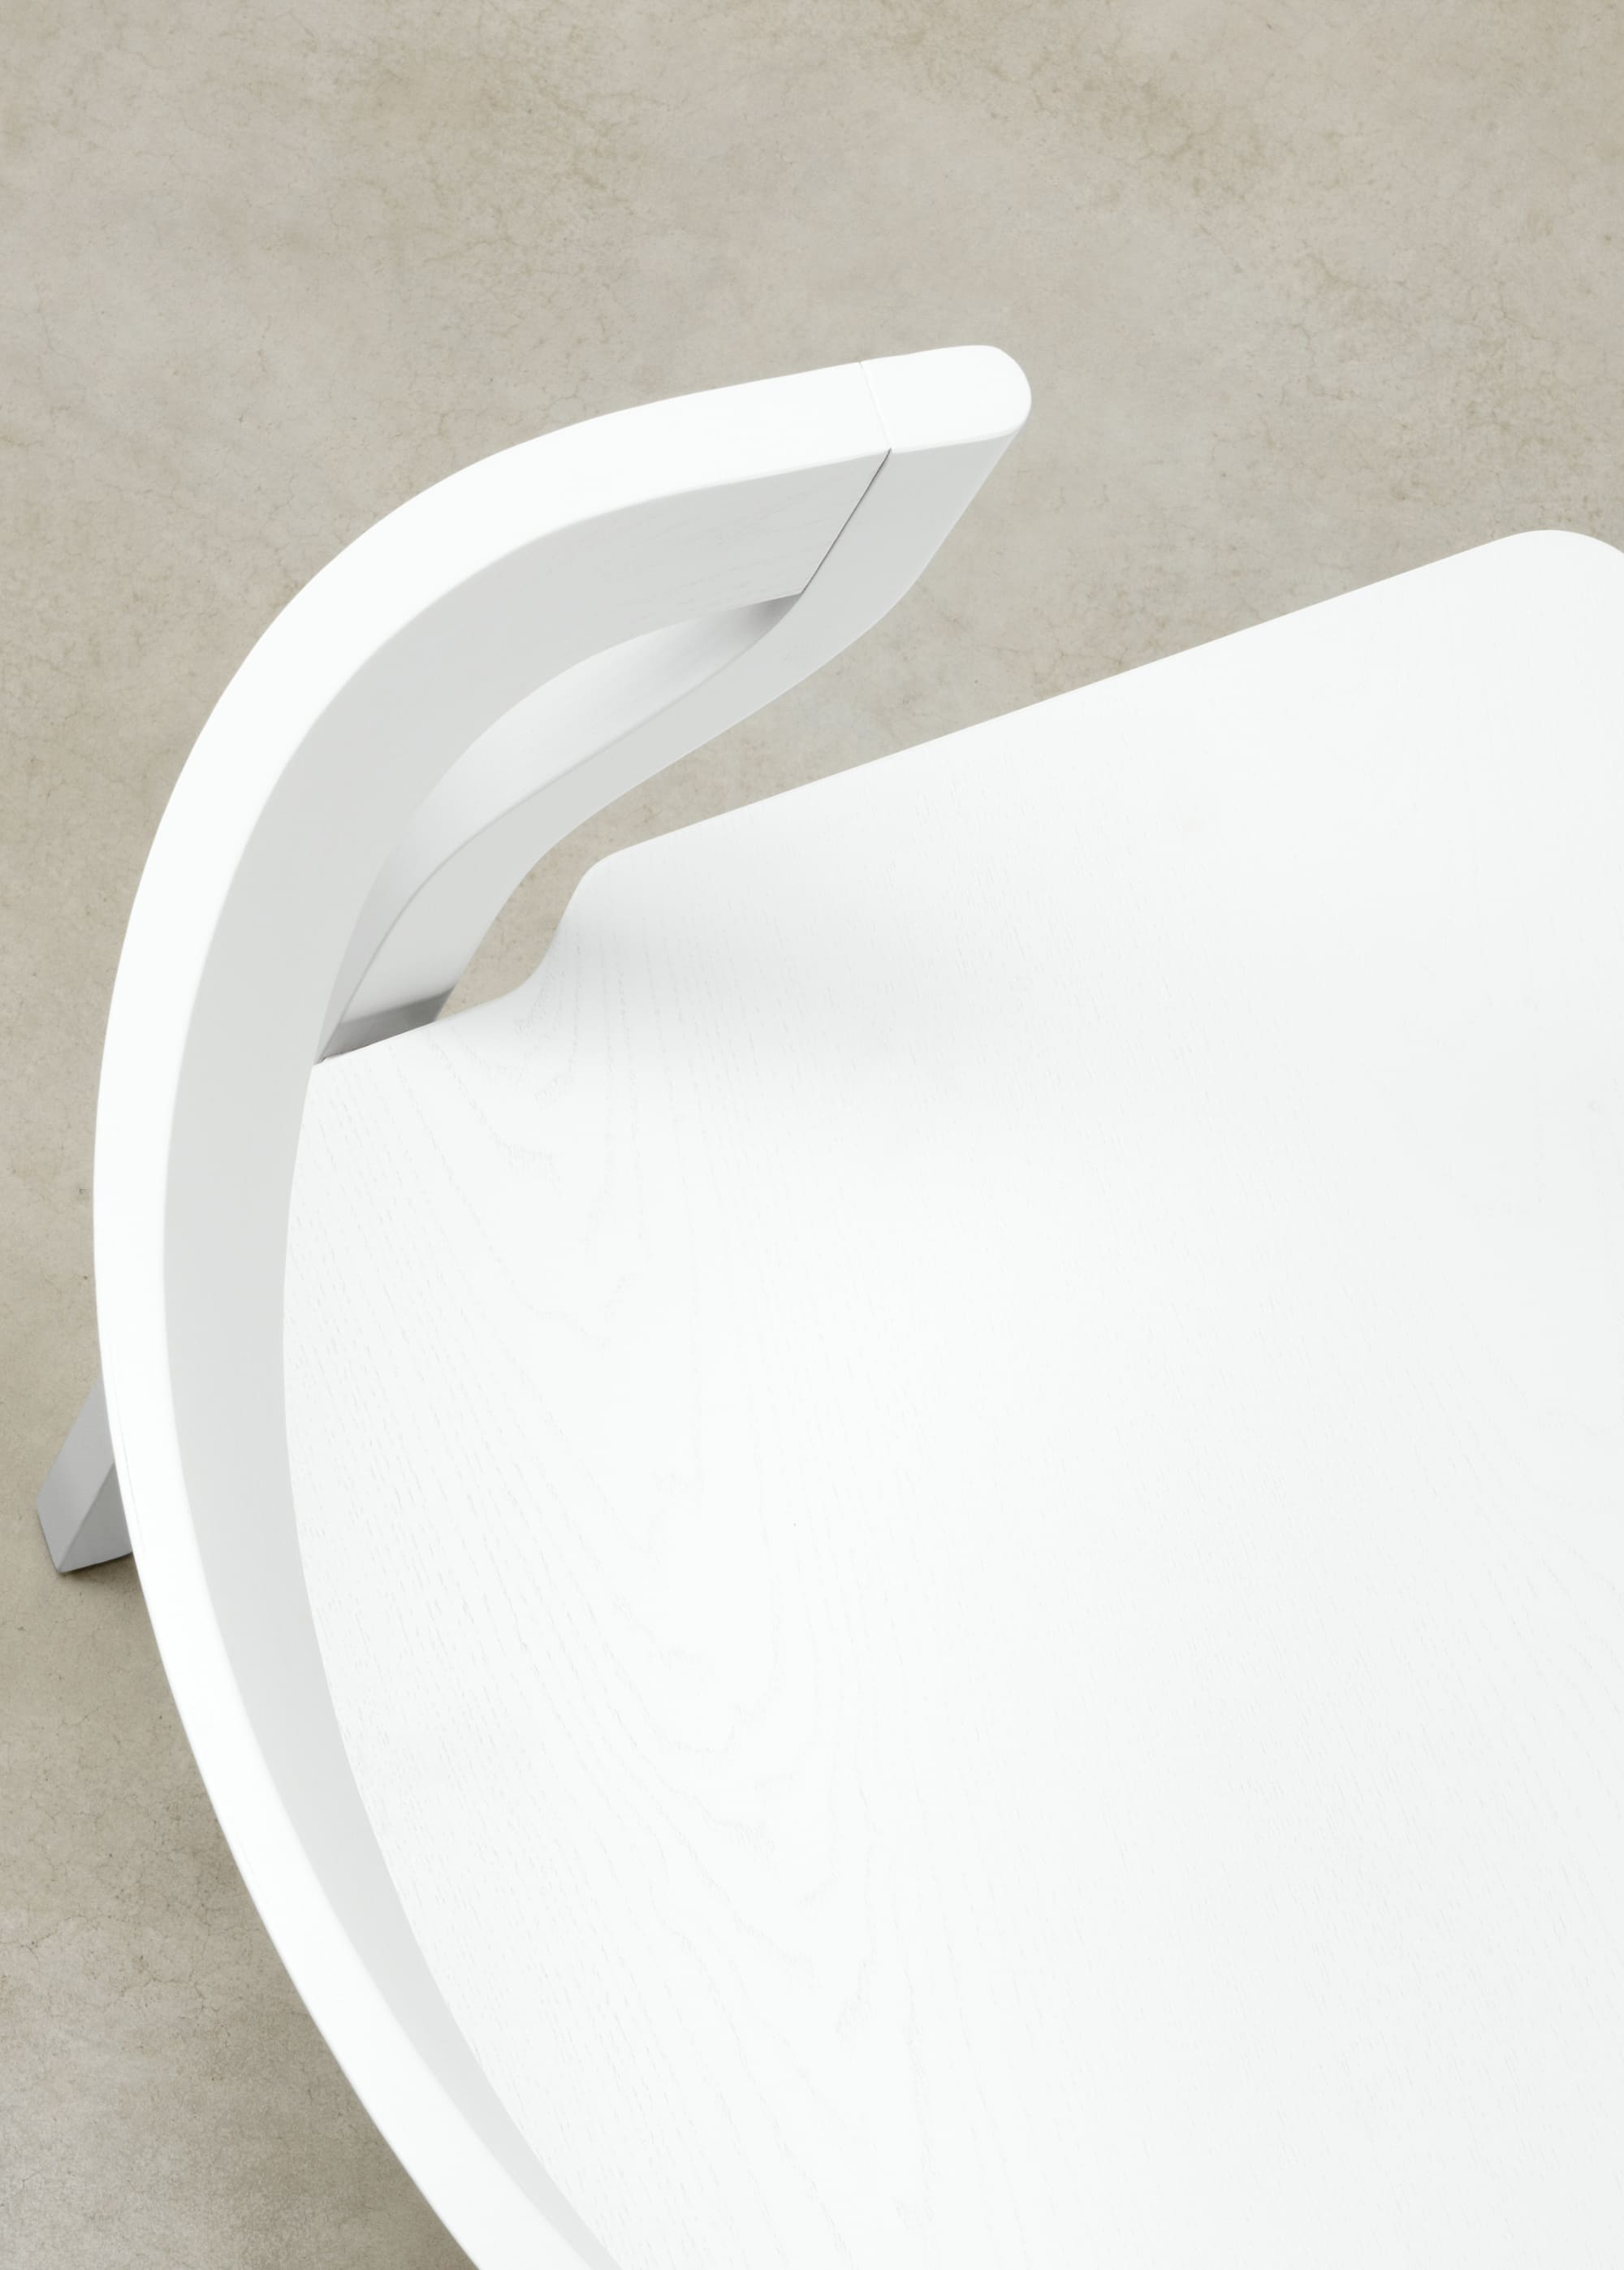 Chairs by Bedont seen at Private Residence - Kalea Chair